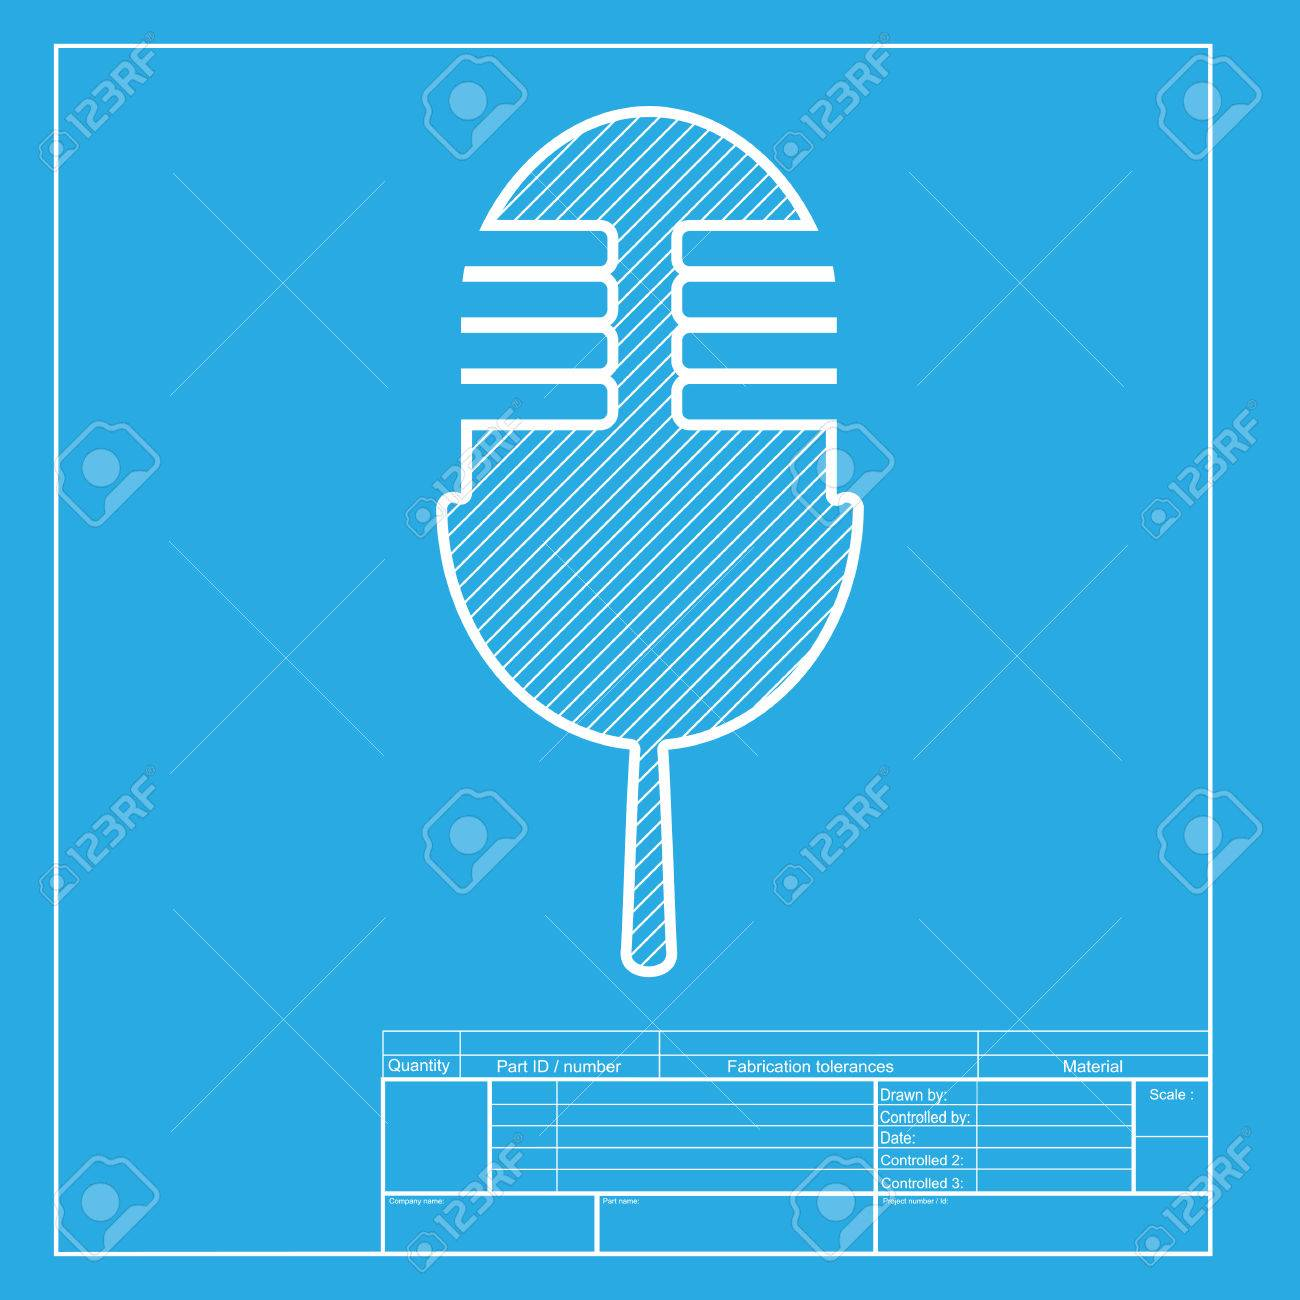 Retro microphone sign white section of icon on blueprint template white section of icon on blueprint template stock vector 58755003 malvernweather Choice Image